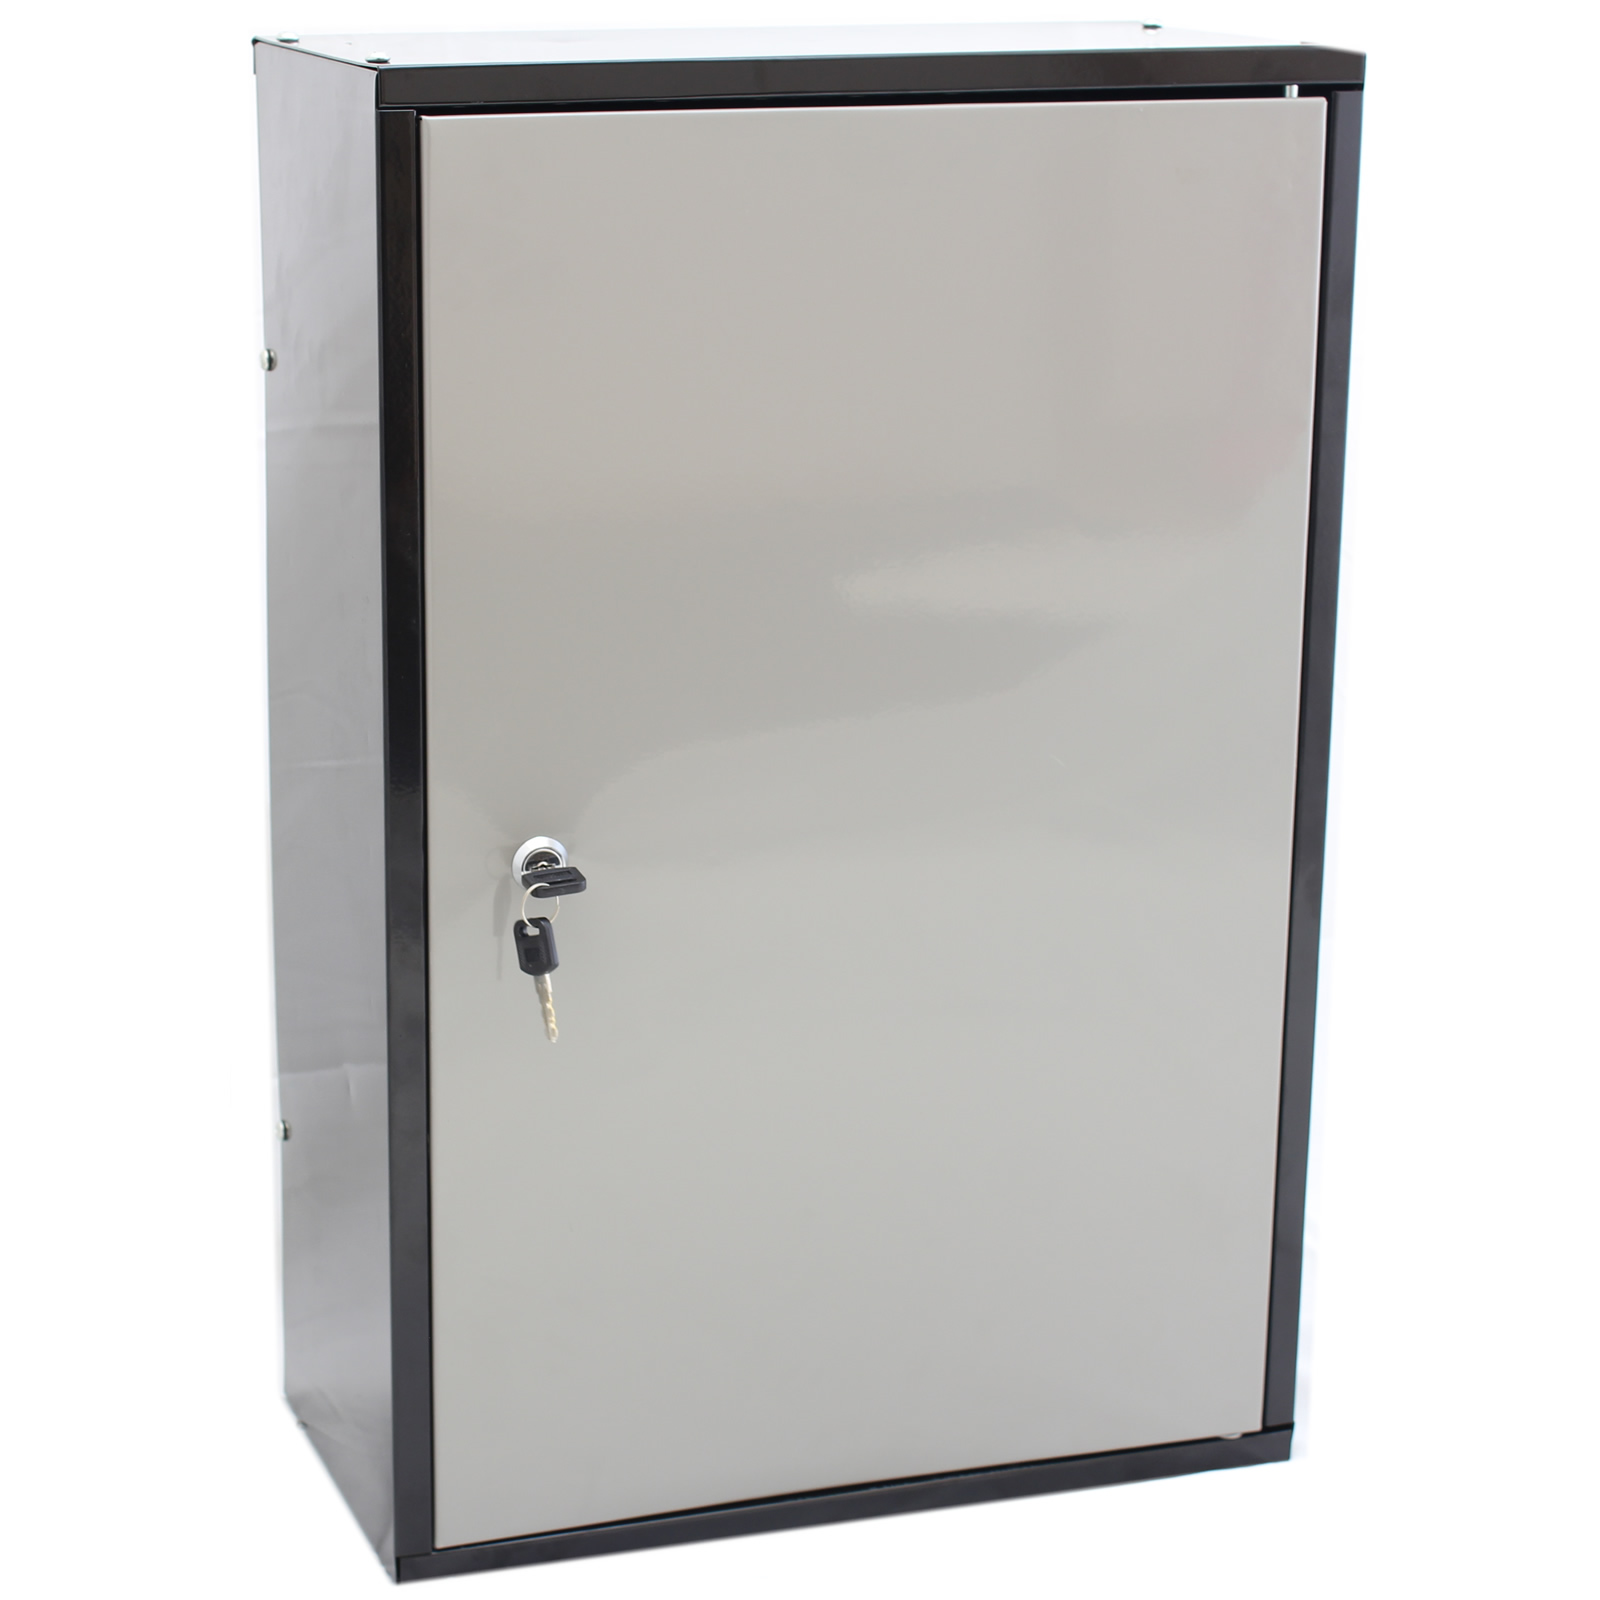 Does Bunnings Deliver Lockable Metal Garage Shed Storage Cabinet Wall Unit Tool